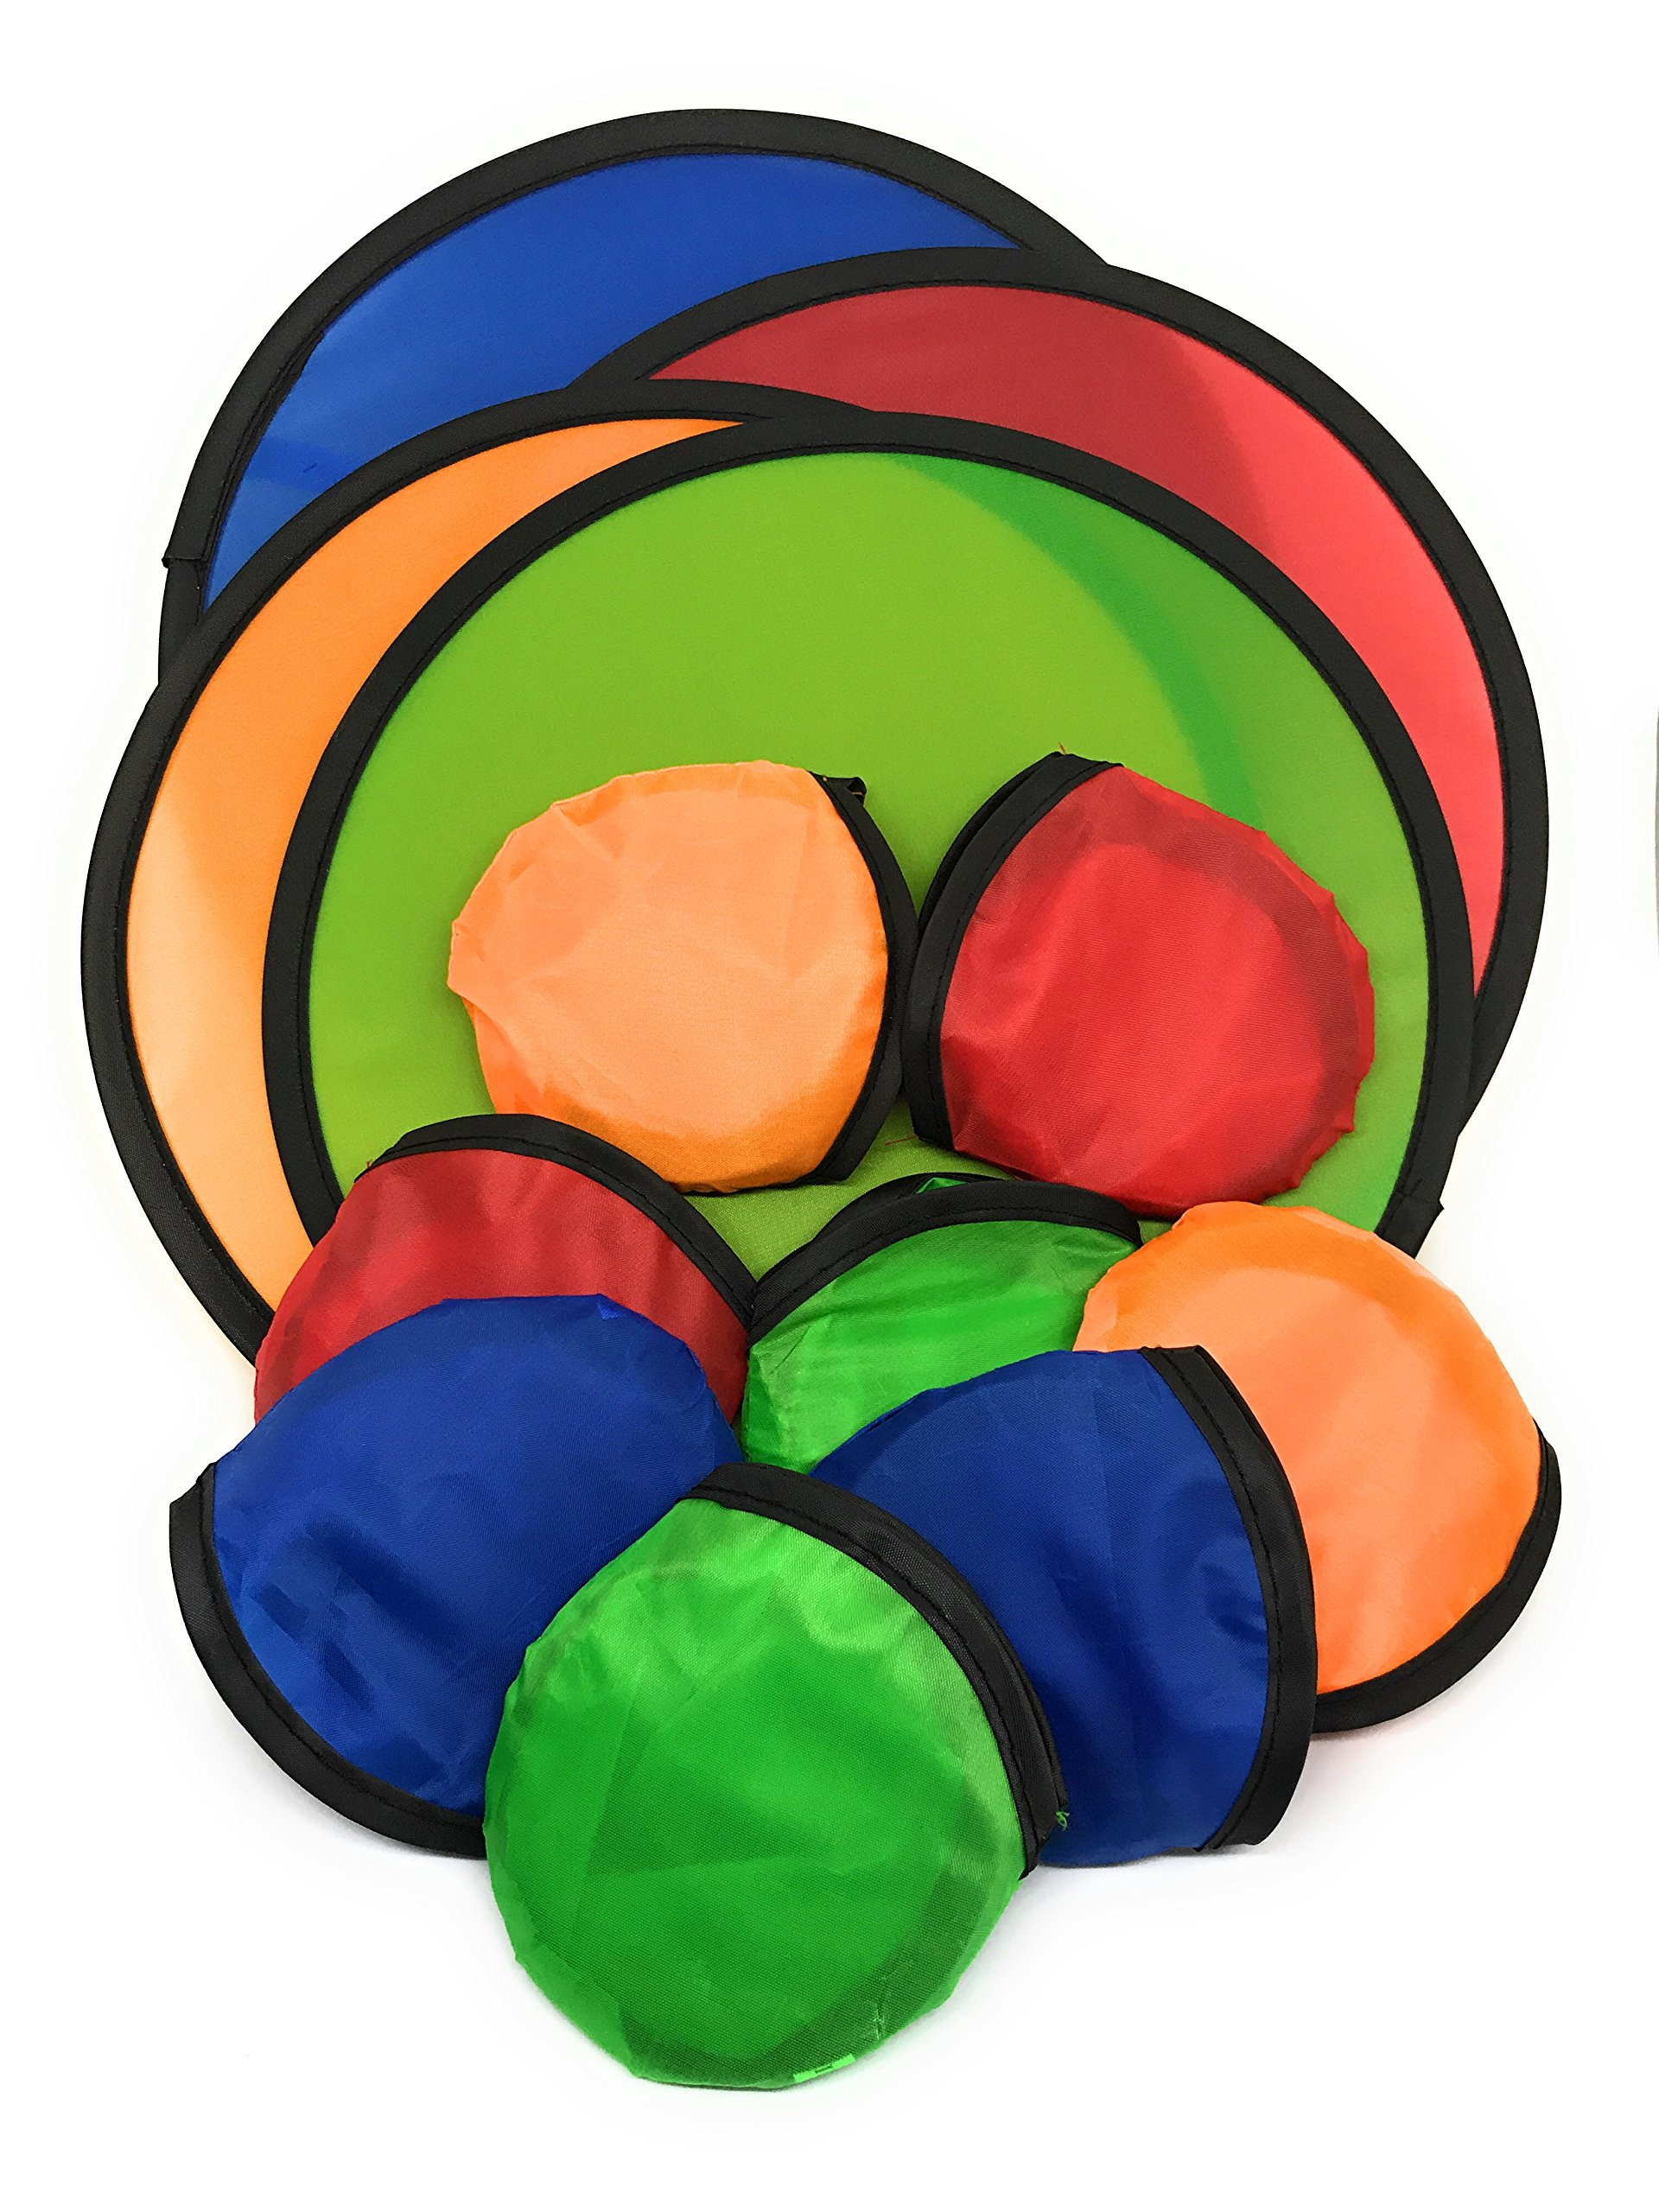 SVT 12 x Foldable Flying Disc/Fan with Bag Assortment - 9.5'' Folding Frisbees in Four Exciting Colors by SVT